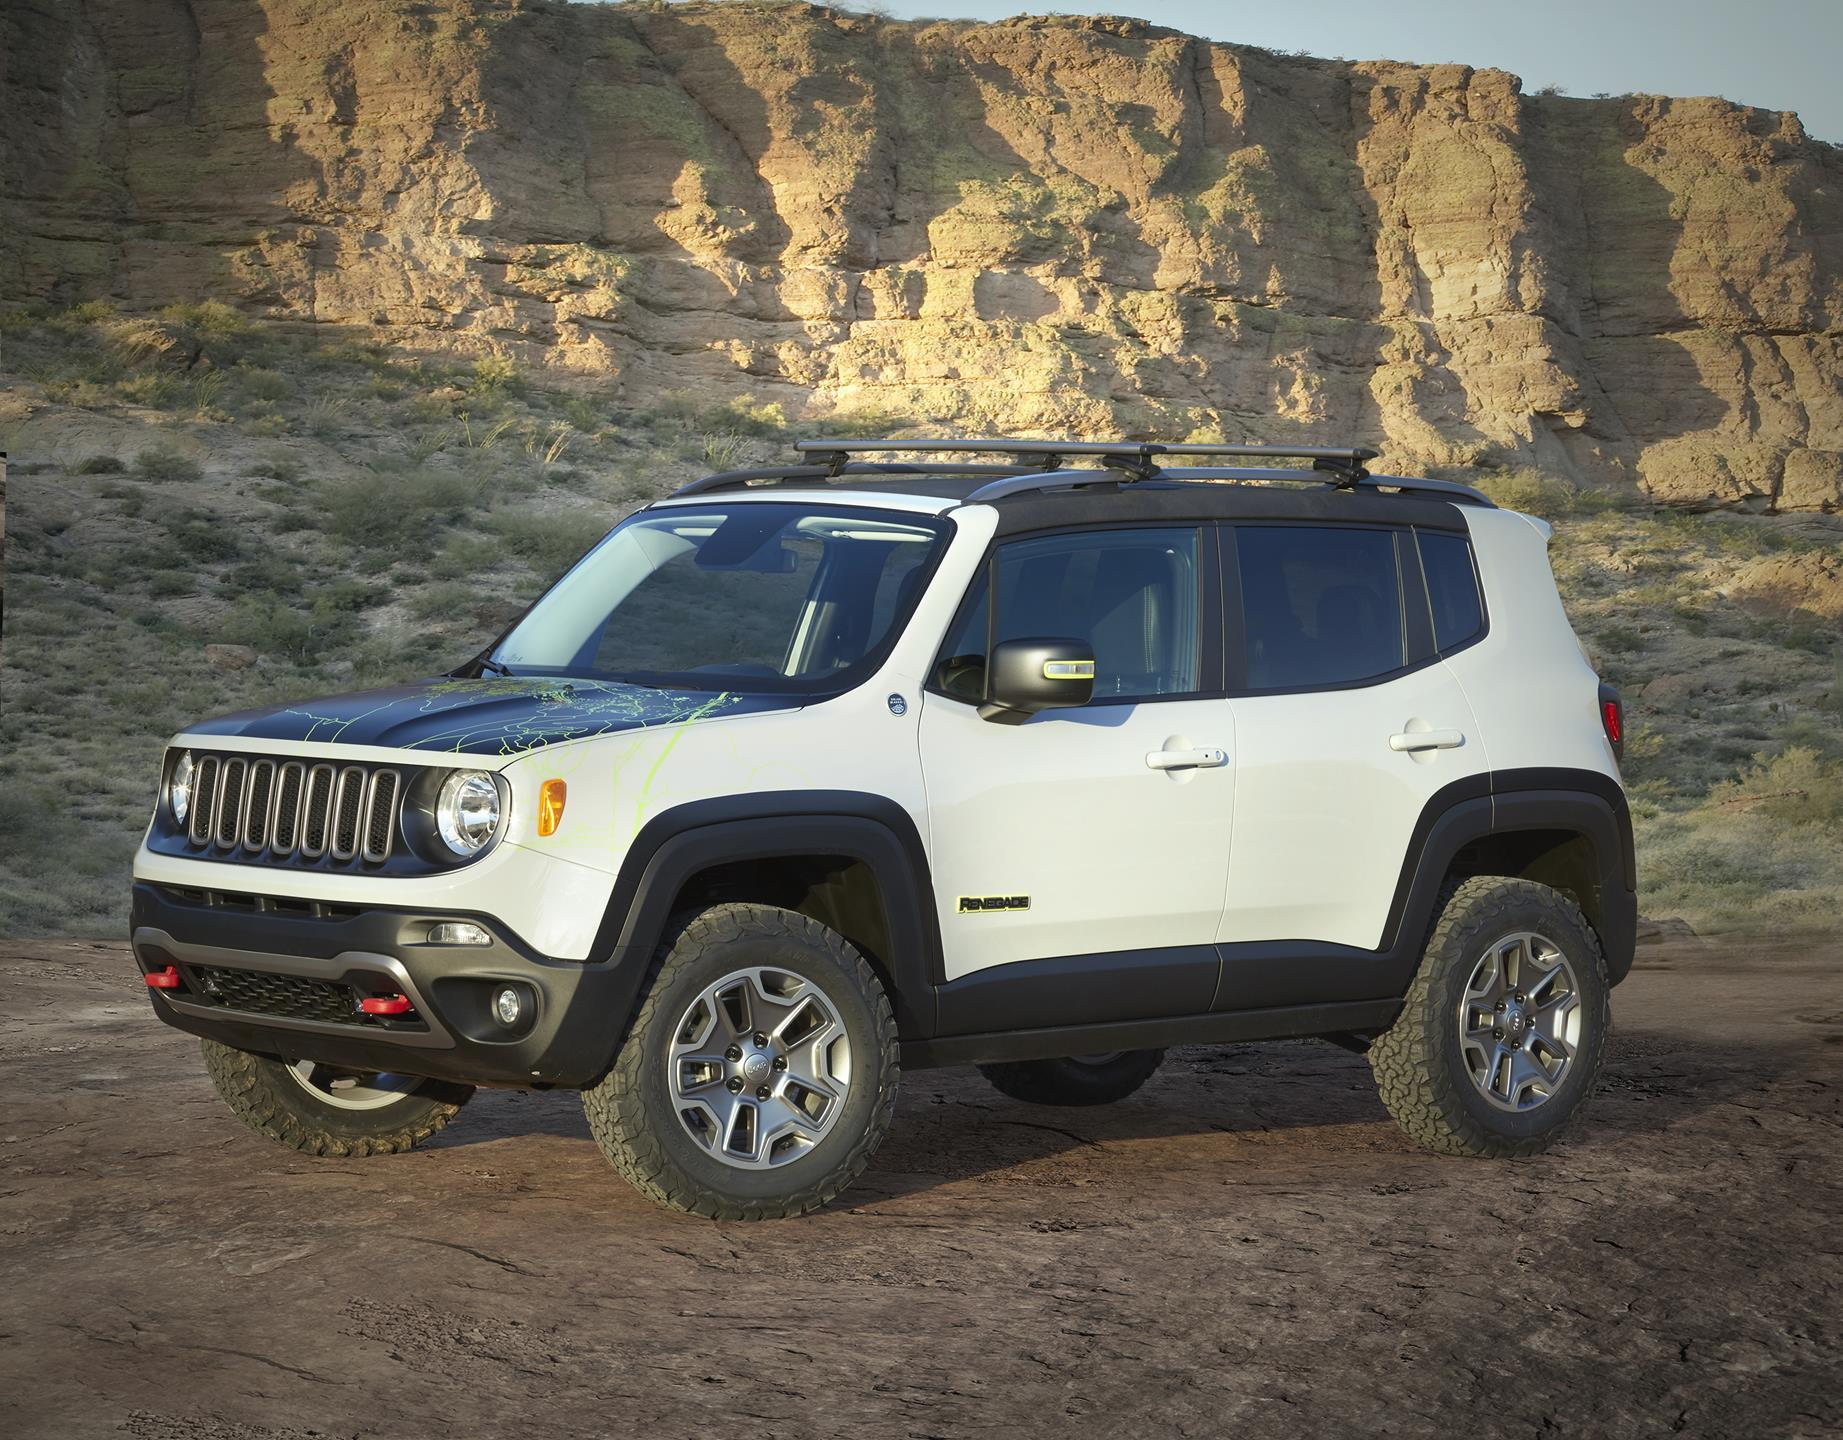 2016 Jeep Renegade Commander Concept News and Information ...